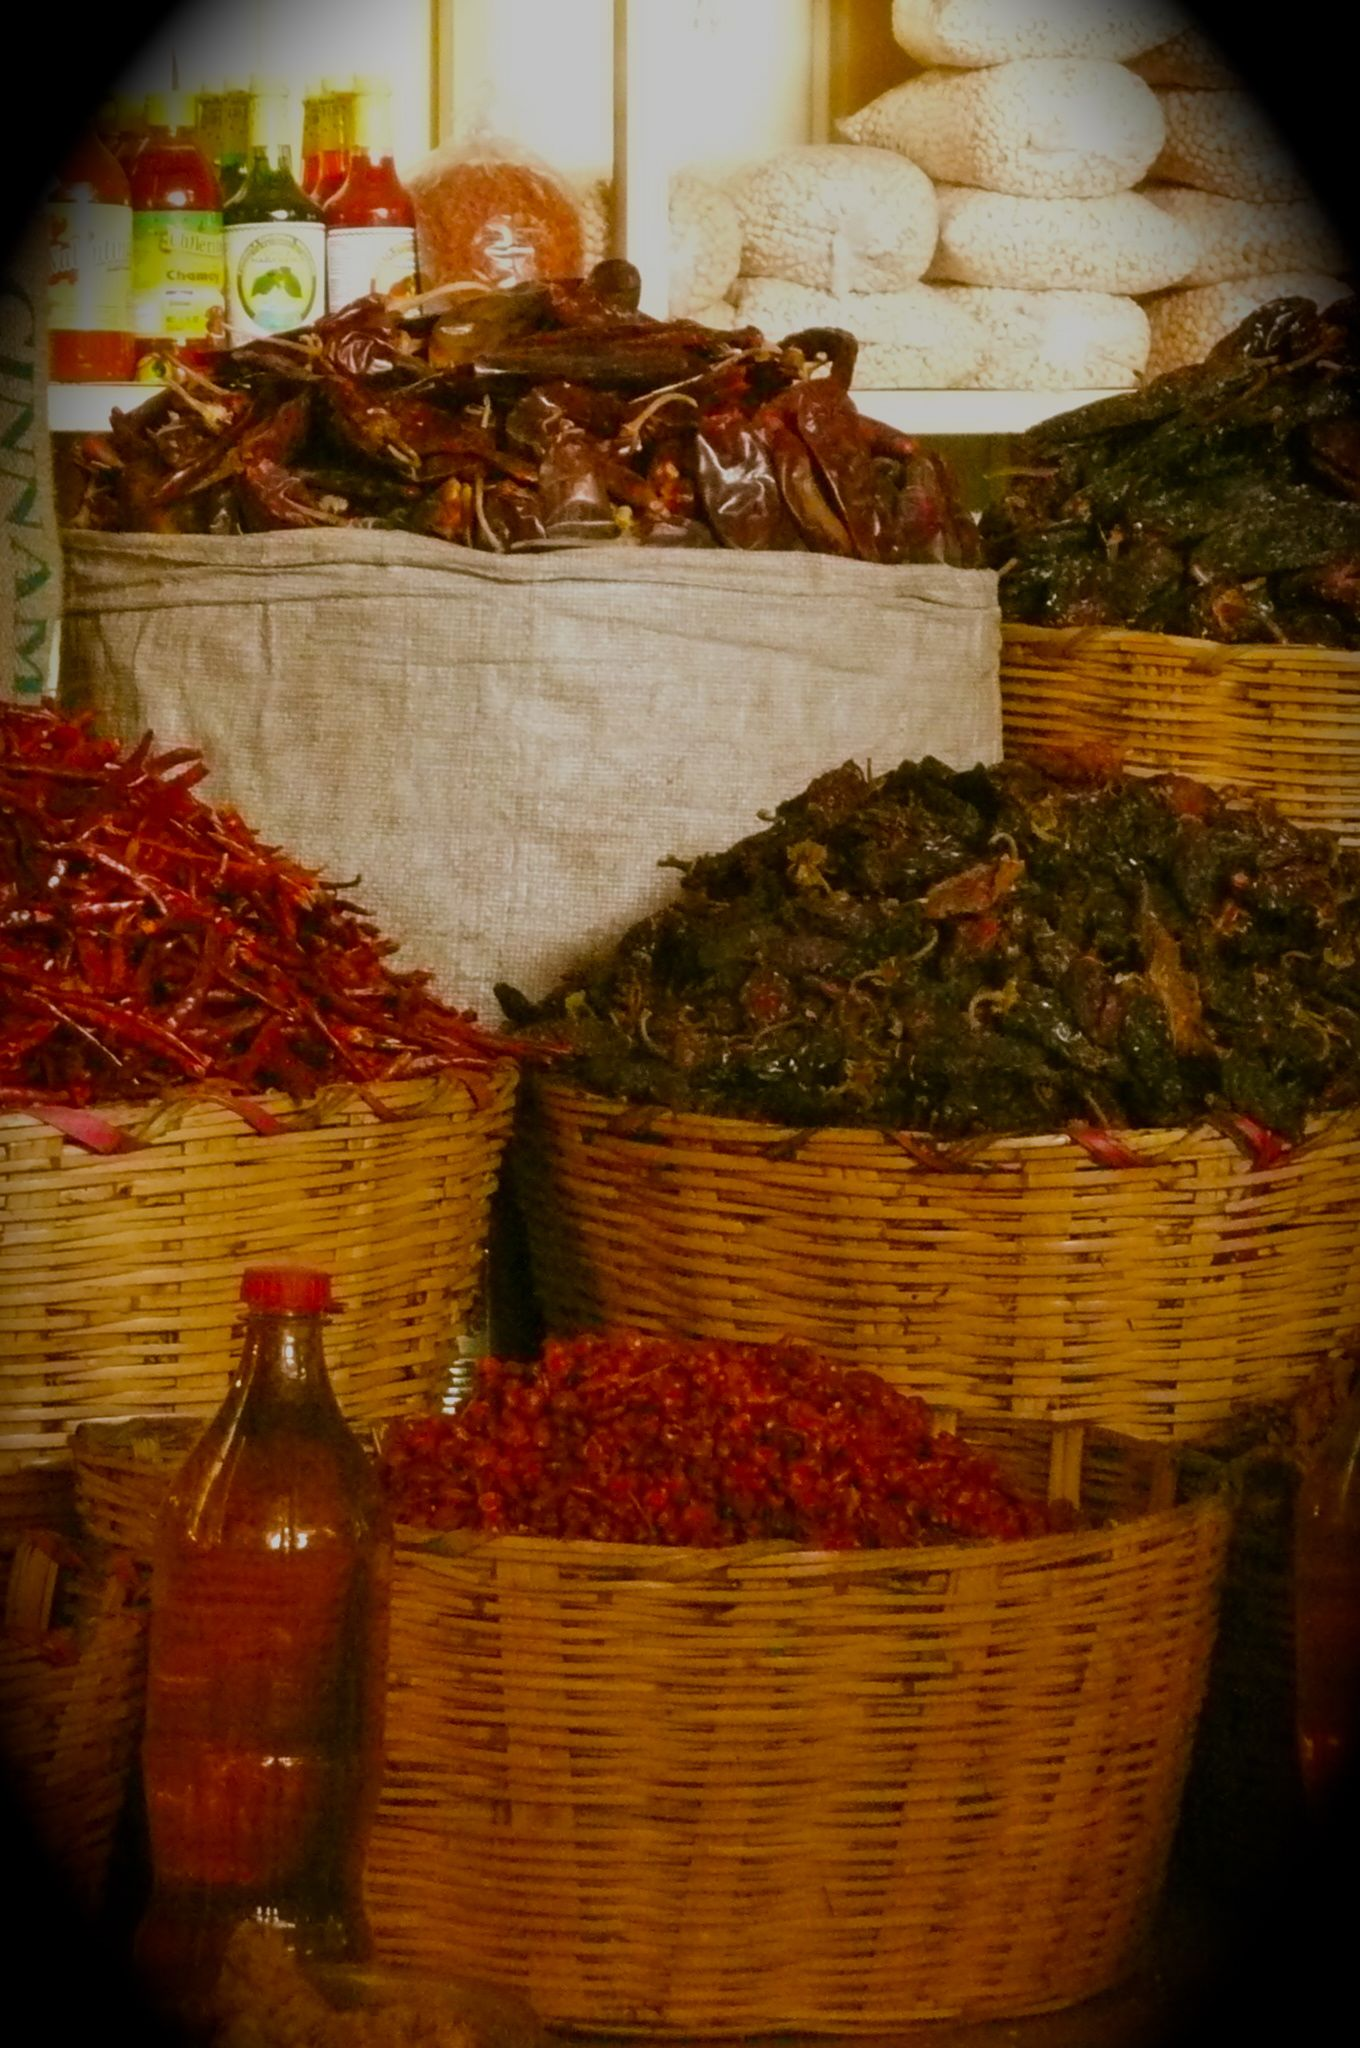 Chillies at the Oaxaca market #Mexico